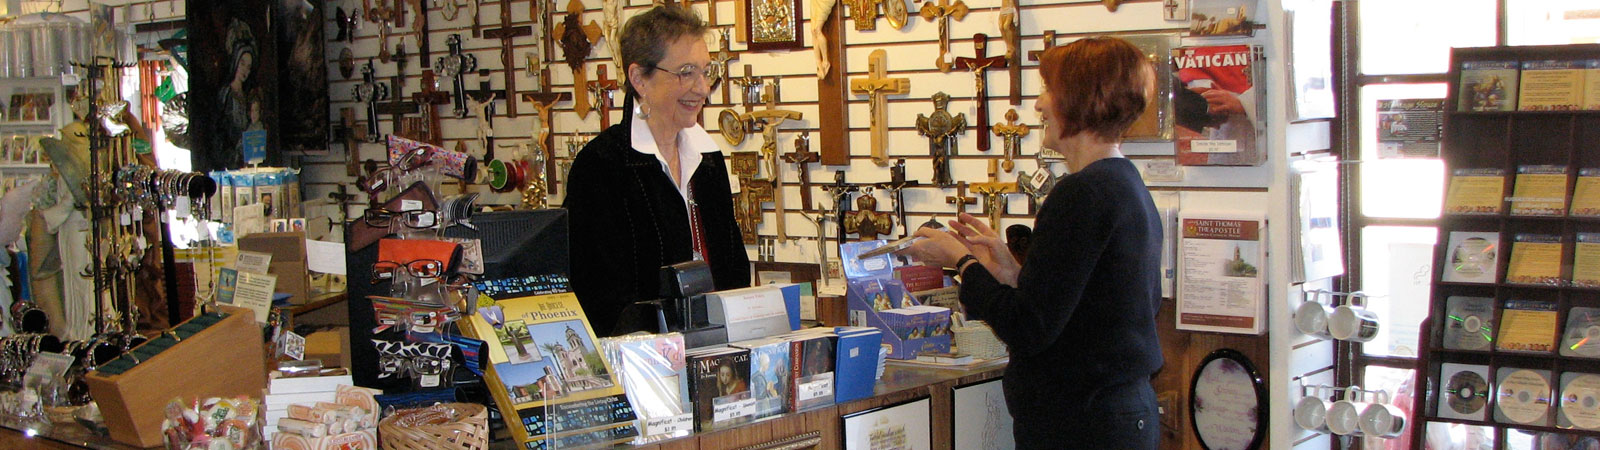 St Thomas The Apostle Catholic Gifts And Book Store